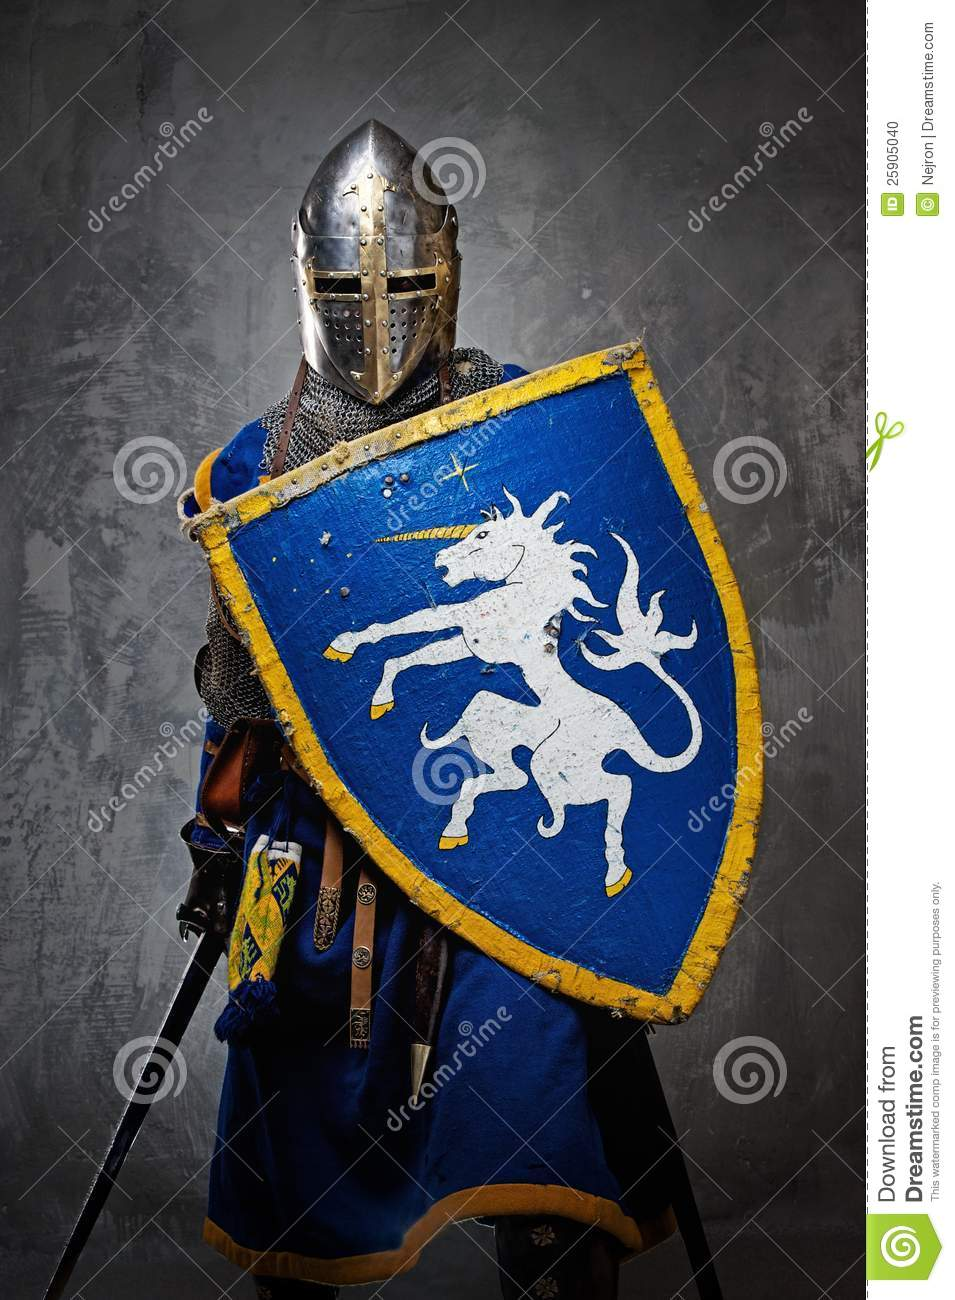 Knight With A Sword And Shield Stock Photo - Image: 25905040